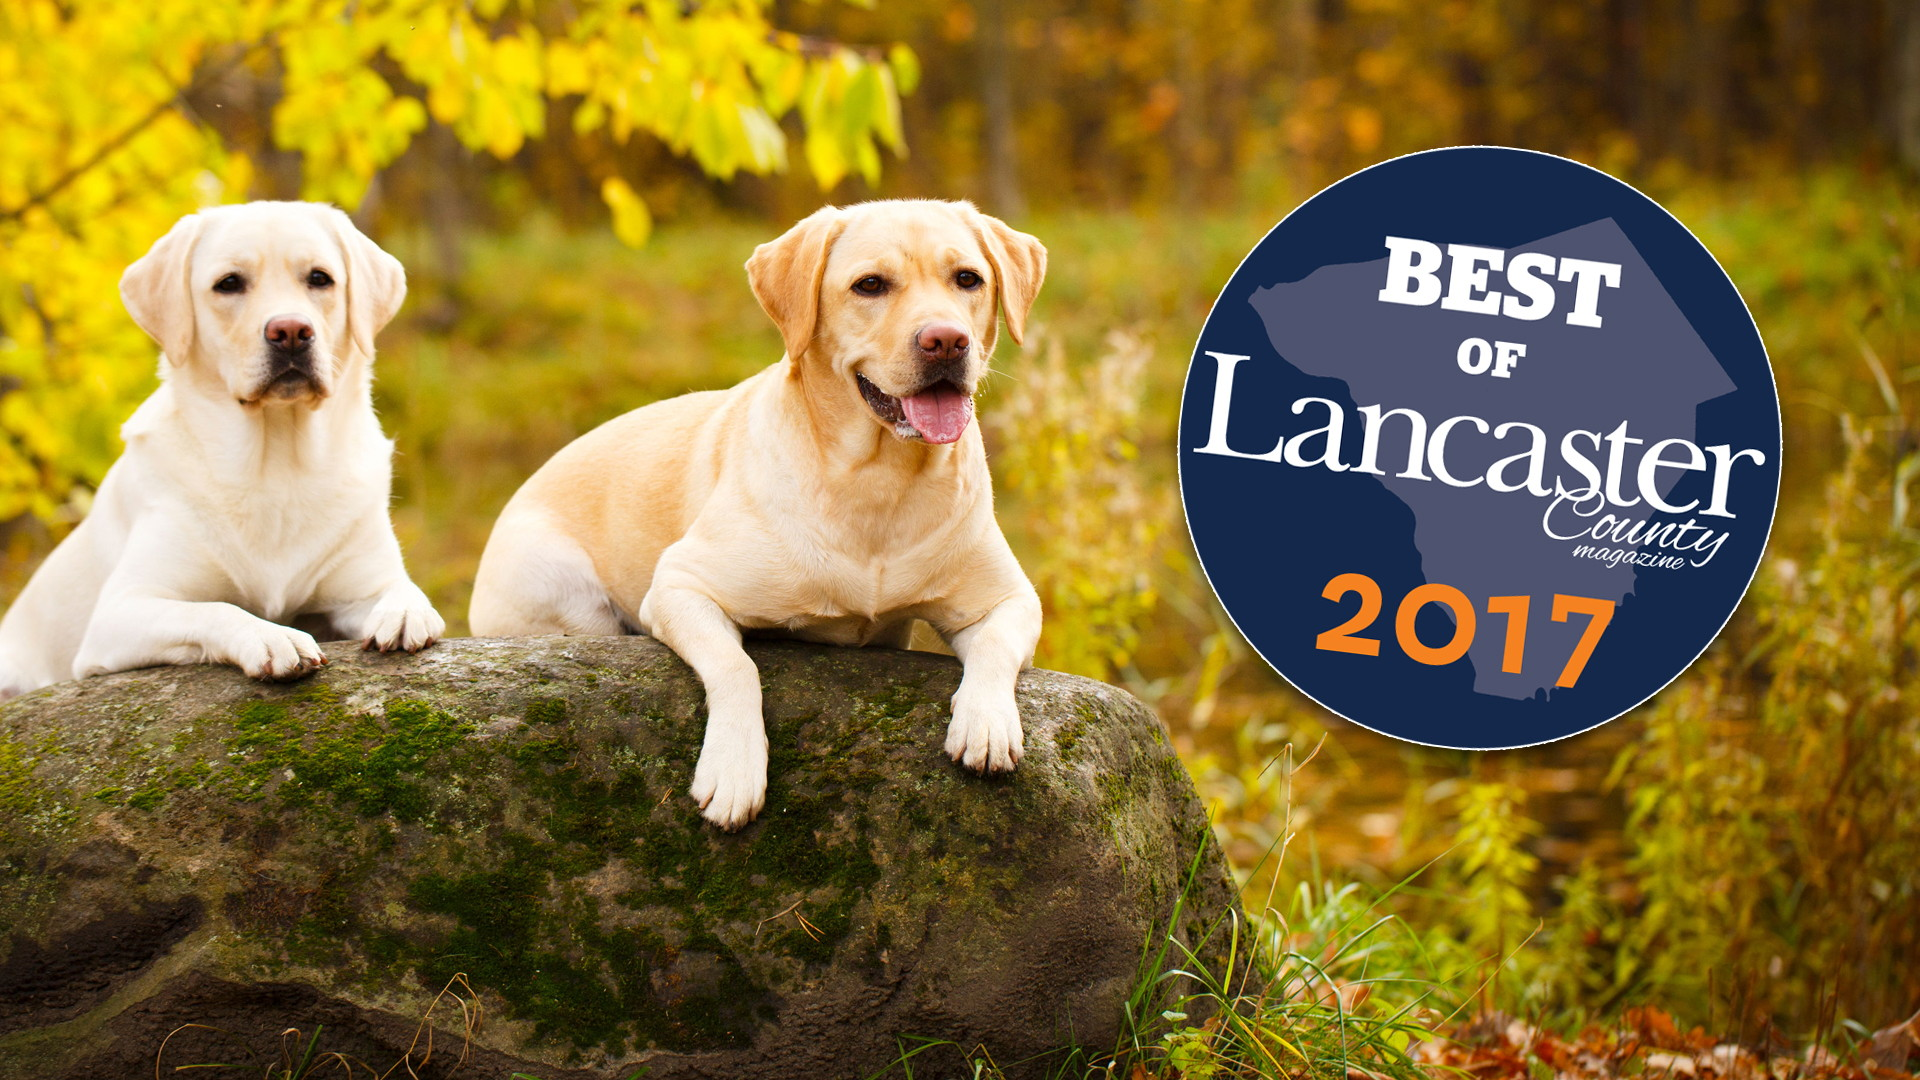 2017 Best of Lancaster - Best Veterinary Practice & Best Veterinarian